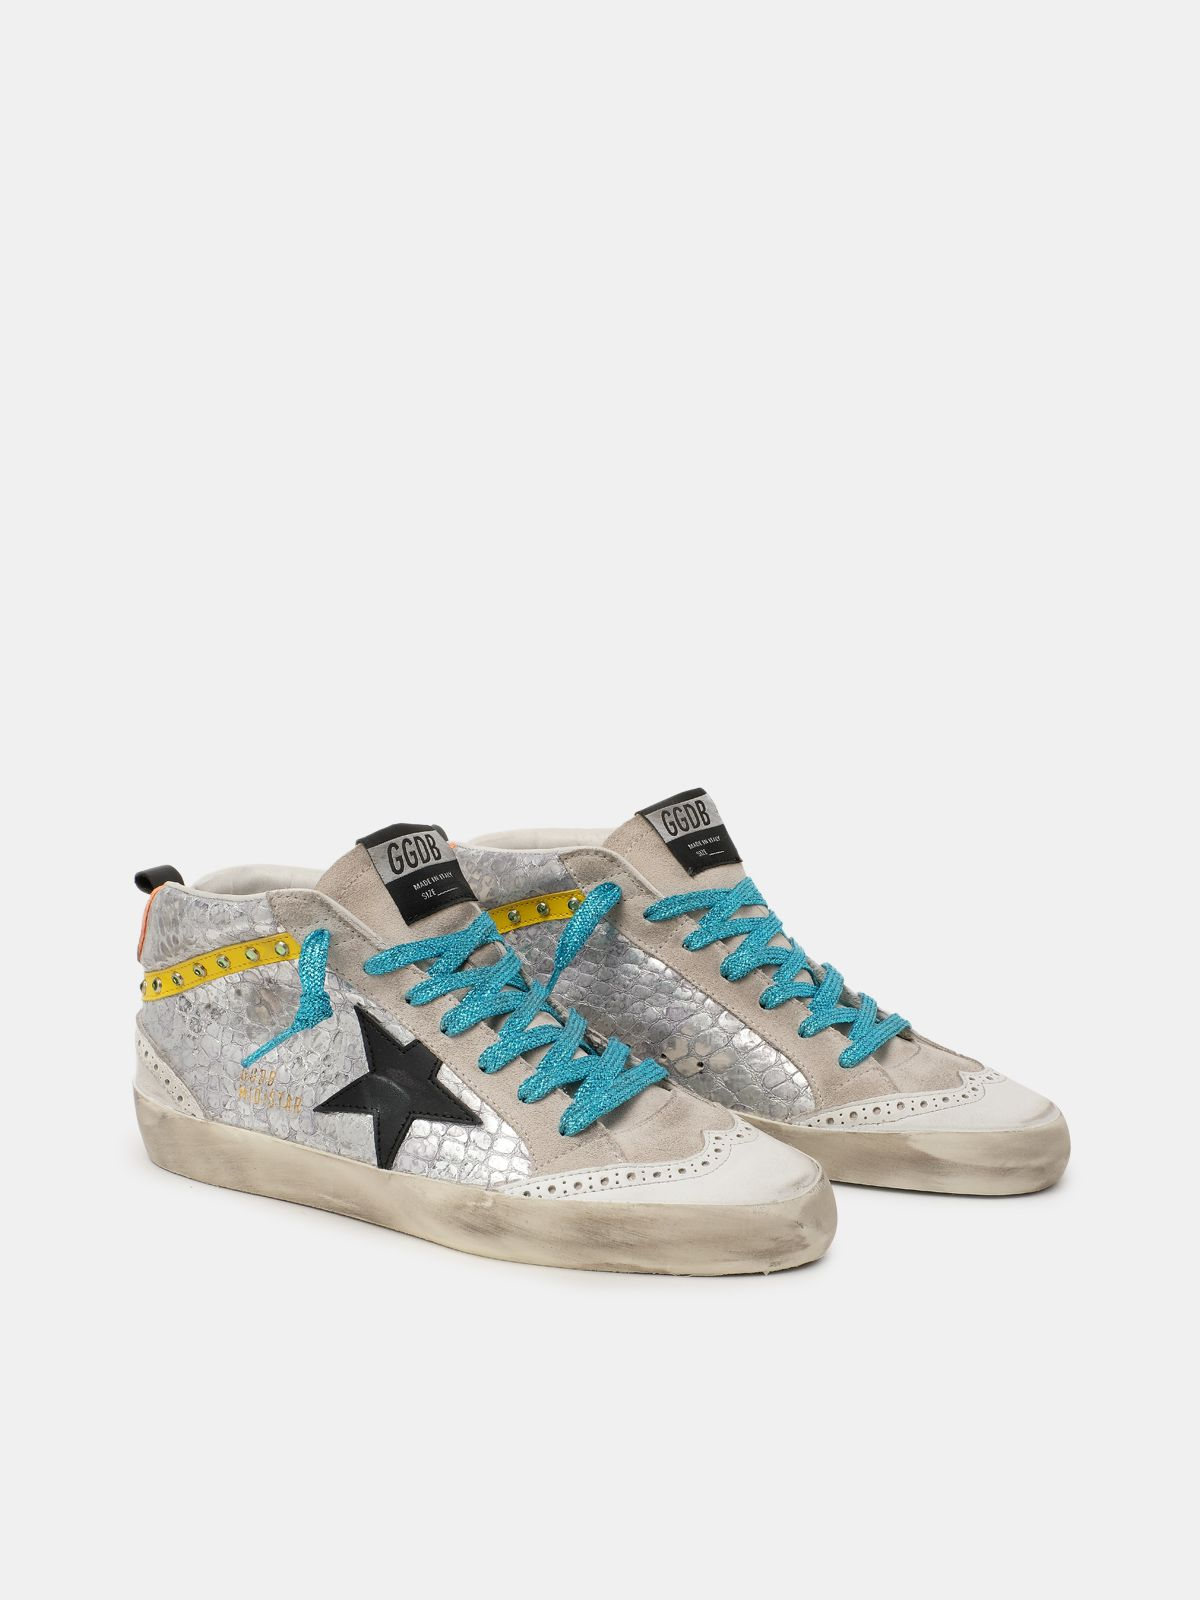 Golden Goose - Silver crocodile-print Mid Star sneakers in